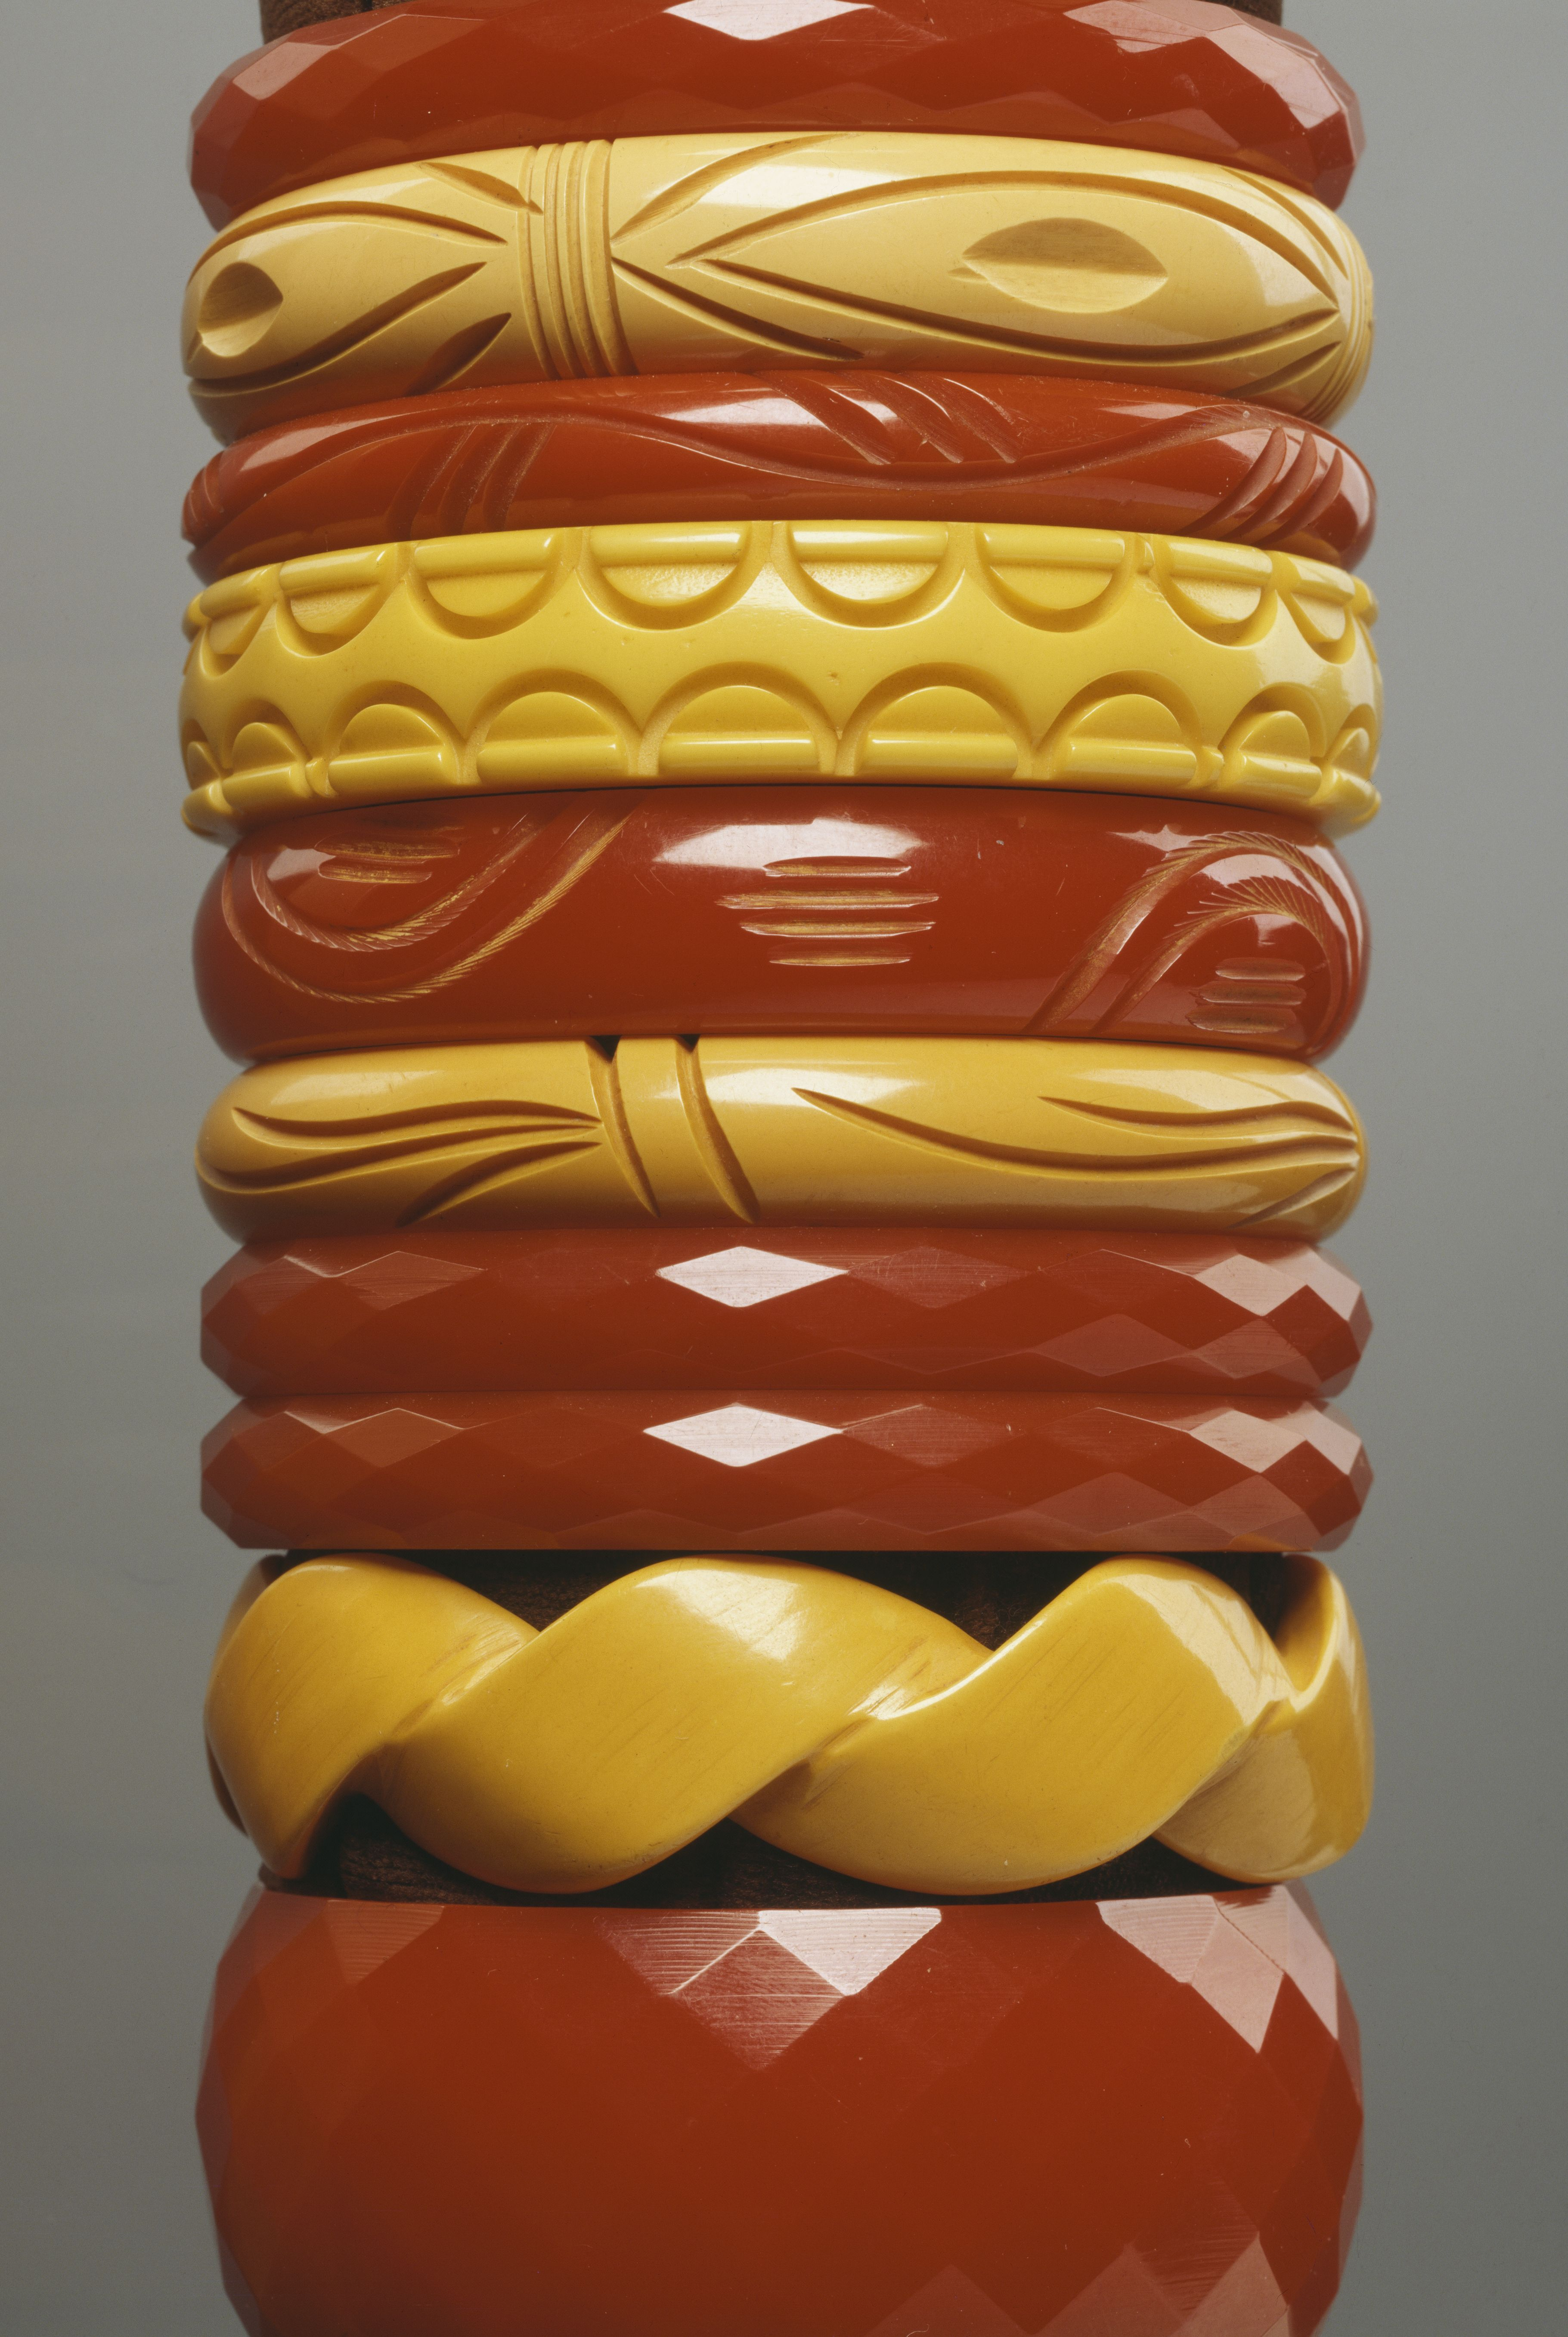 How to Identify Bakelite Jewelry and Spot Imitations